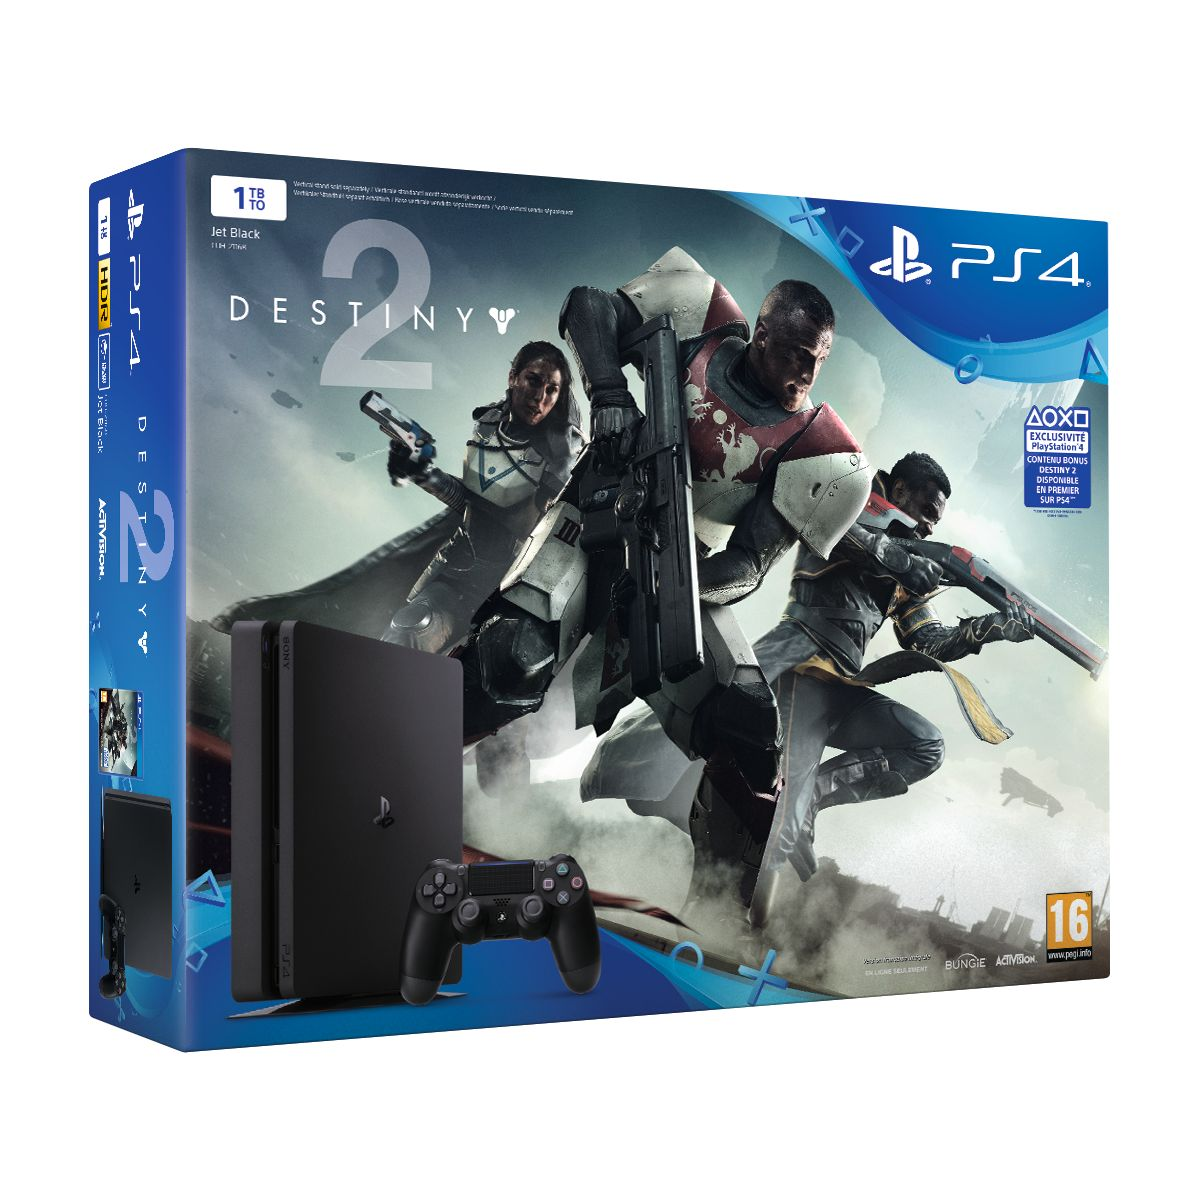 Console SONY Pack PS4 1 To Black + Desti